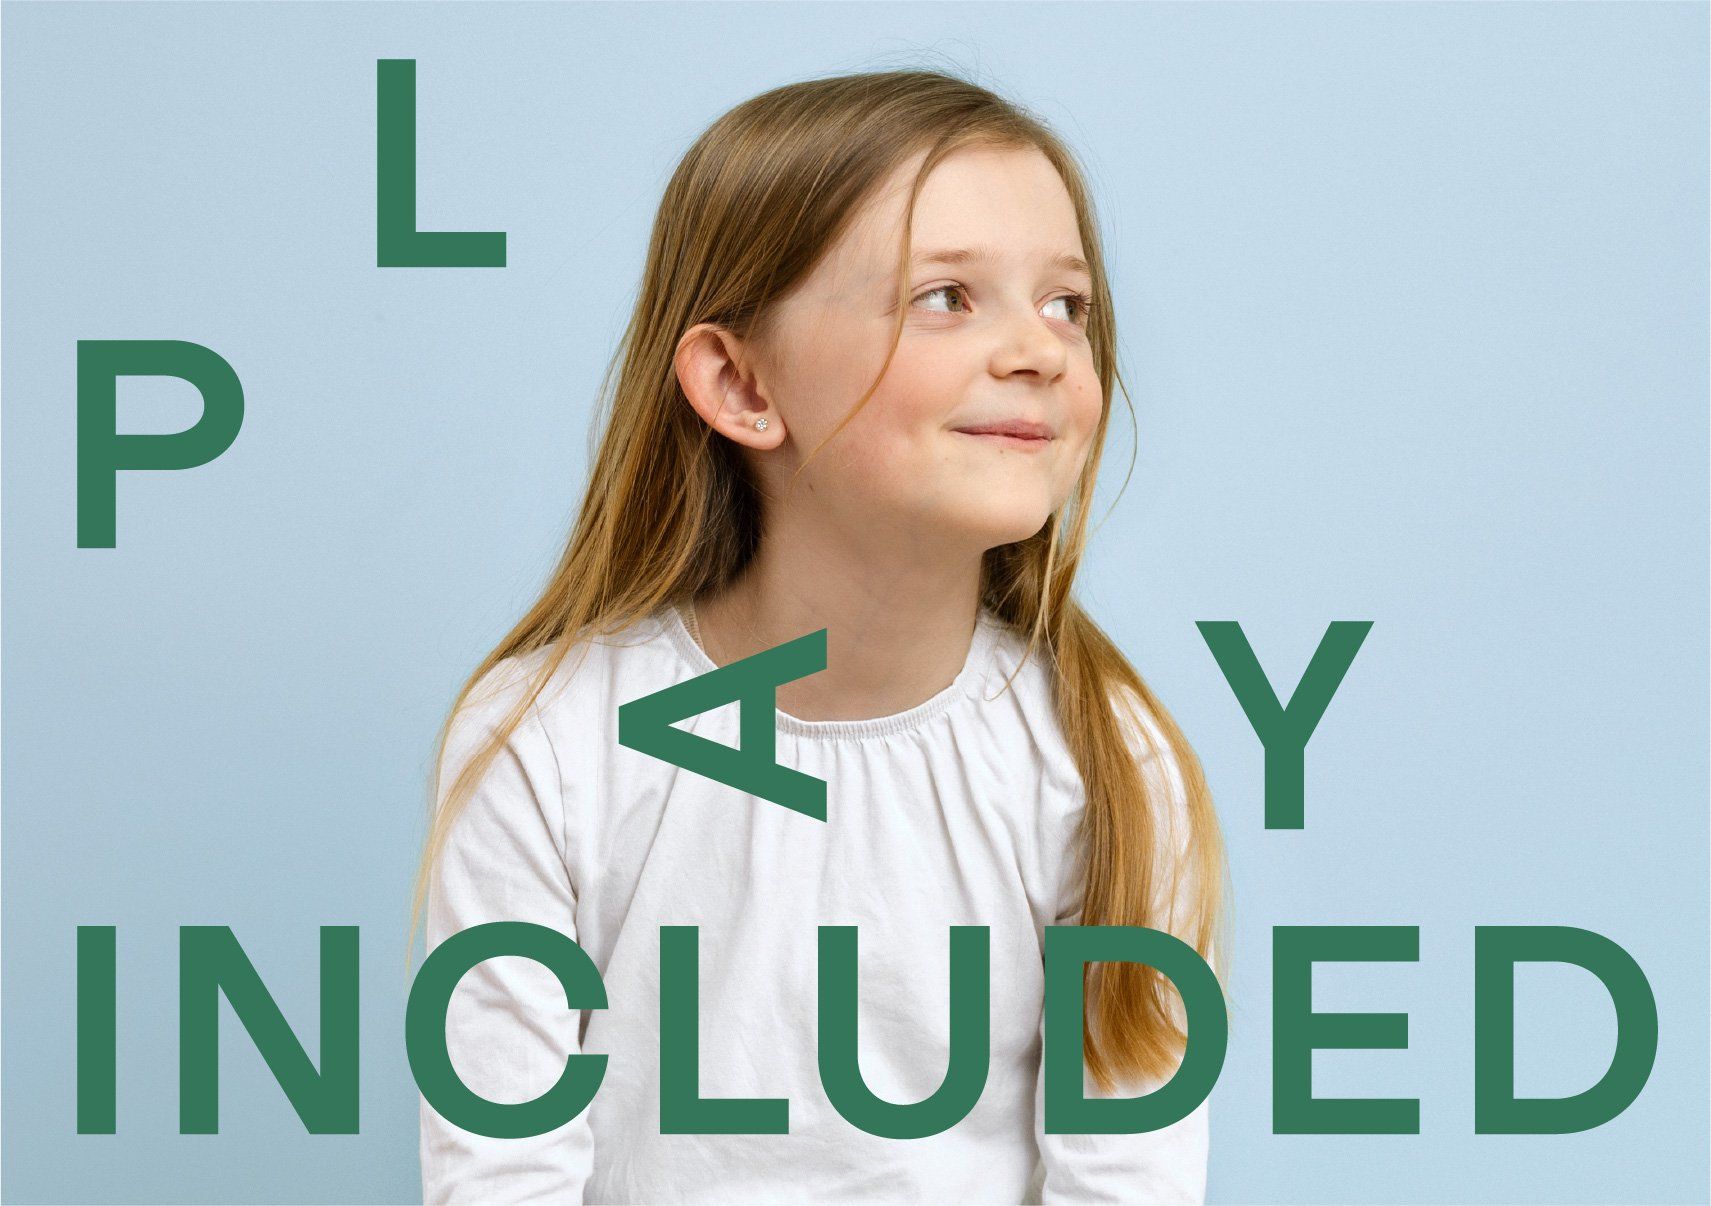 02-PLAY-INCLUDED-PHOTO-logo-and-girl-80-1